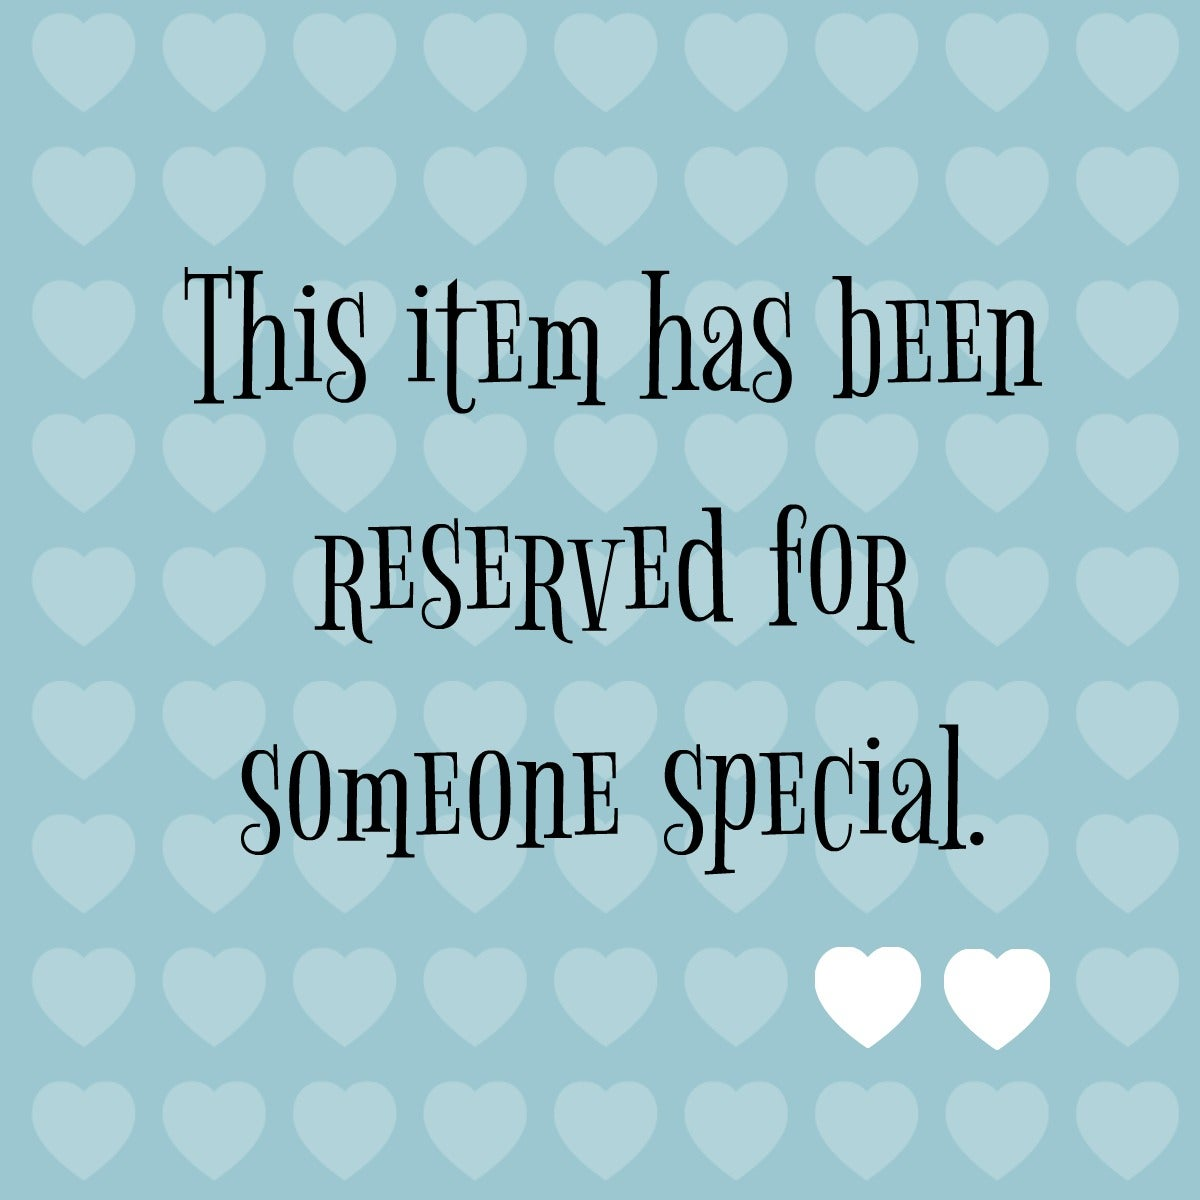 Image of reserved for erica